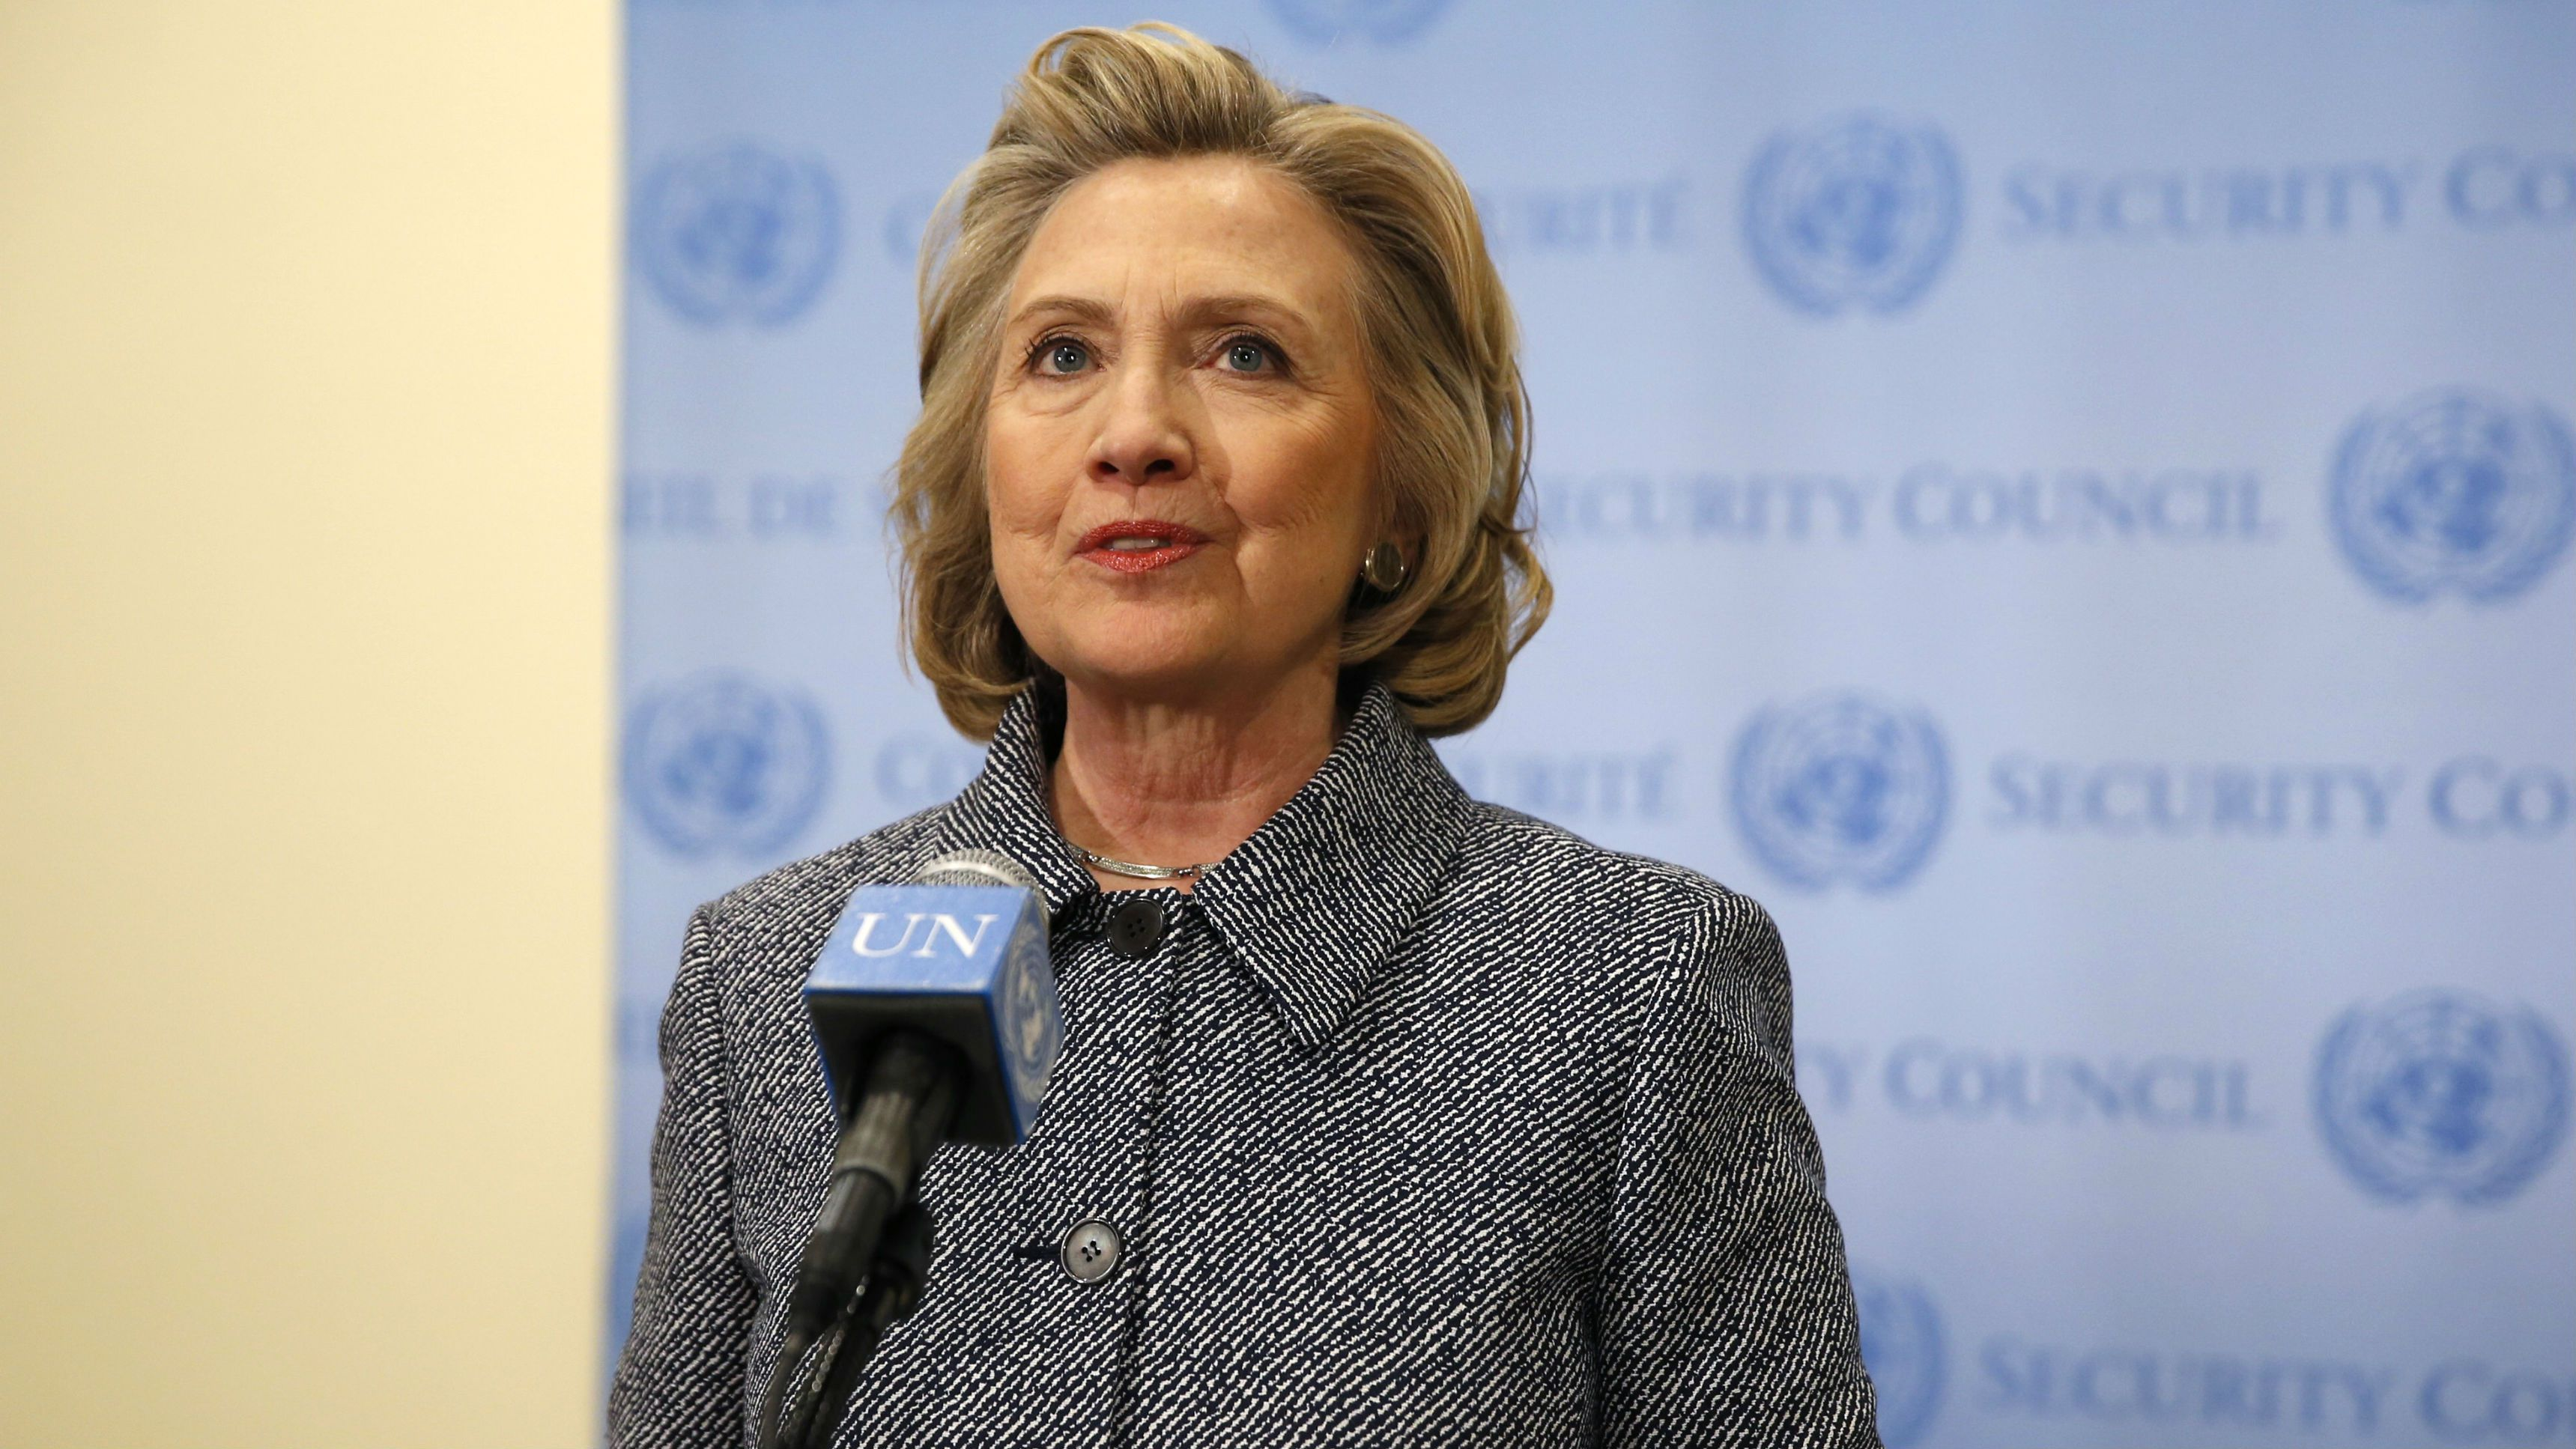 Former U.S. Secretary of State Hillary Clinton speaks during a press conference at the United Nations in New York March 10, 2015. REUTERS/Mike Segar (UNITED STATES - Tags: POLITICS)